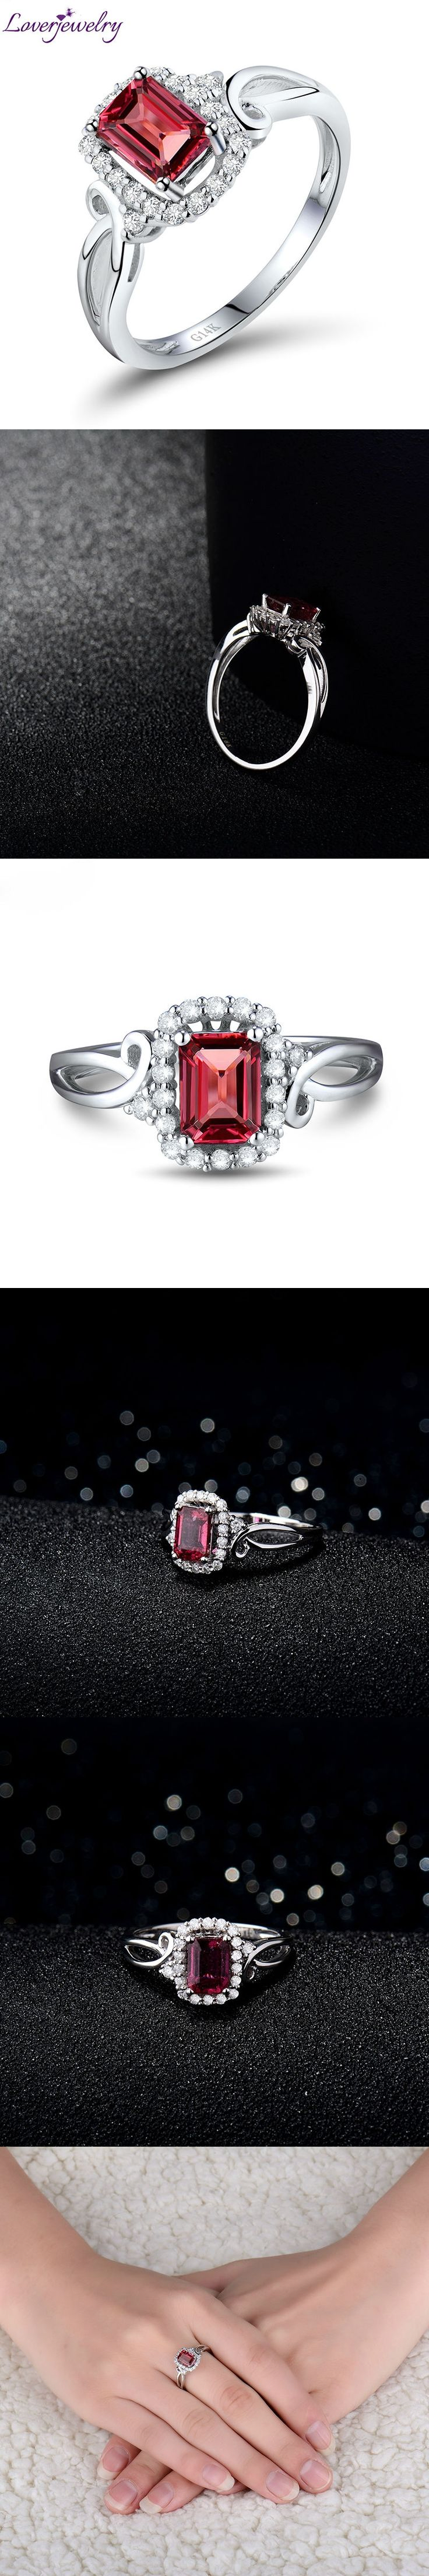 Wholesale Halo Diamond Tourmaline Promised Ring  In Solid 14Kt White Gold Fine Jewelry for Women Christmas WU034